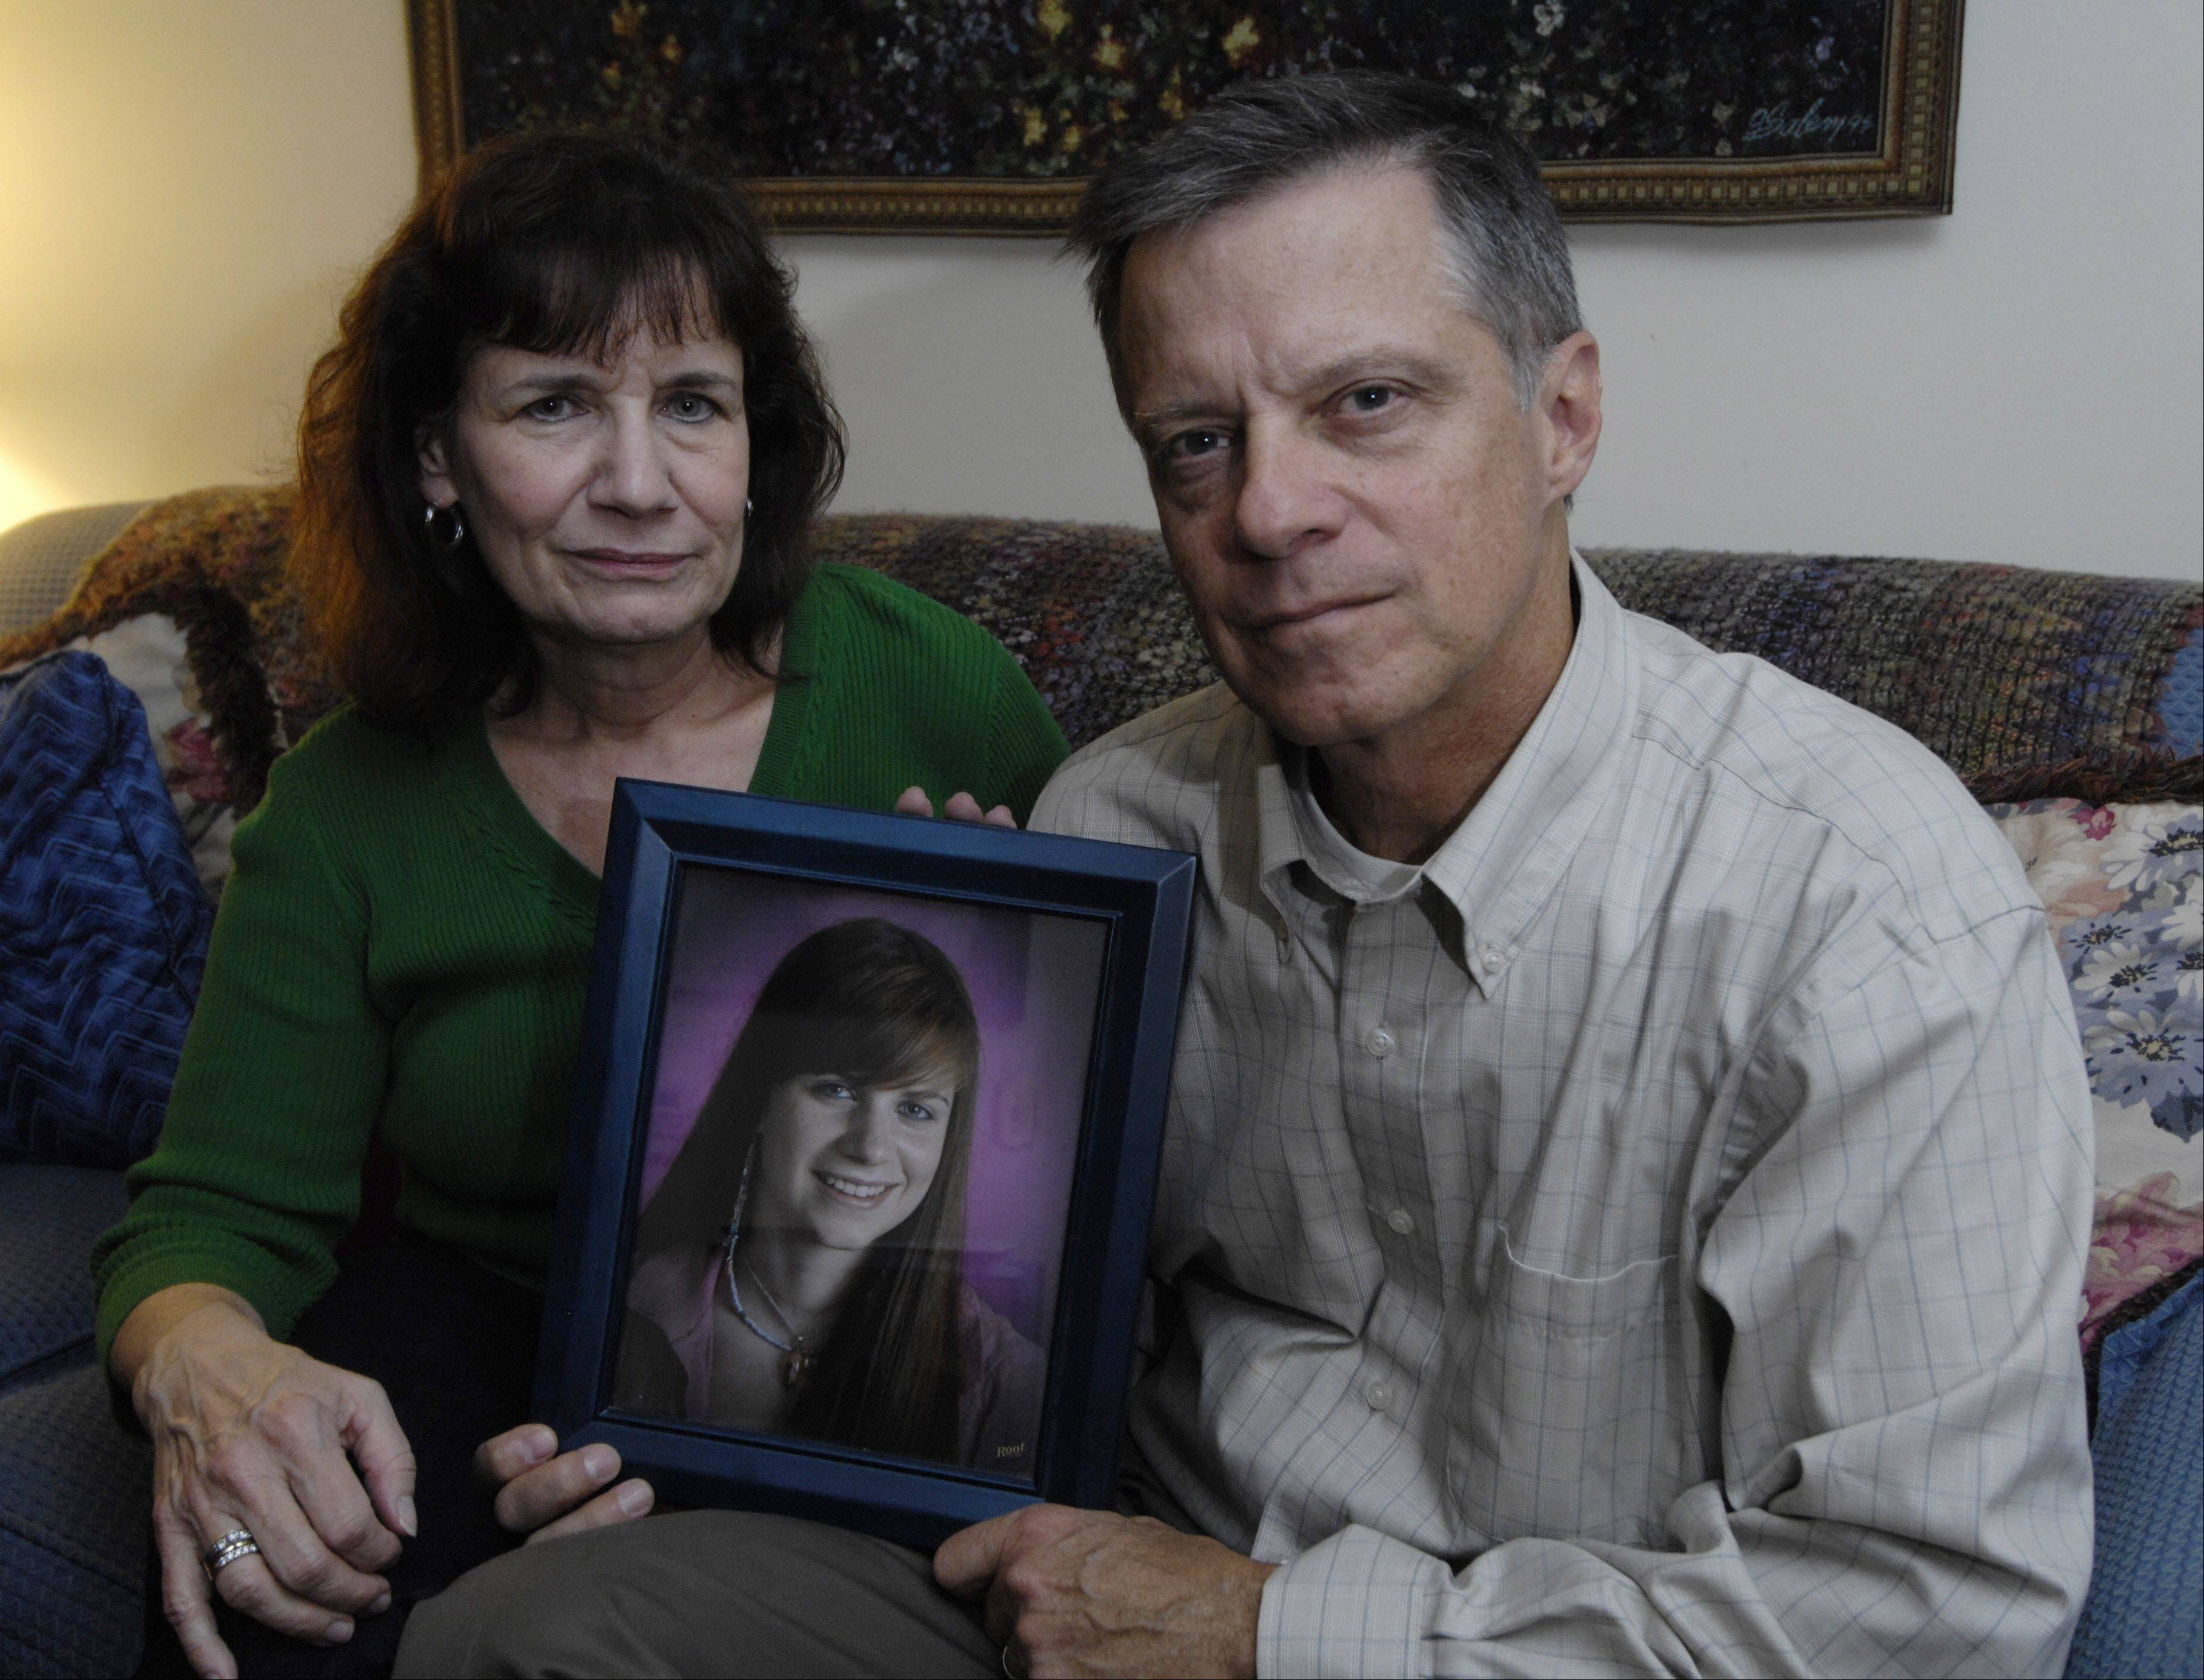 Peter Jackson and his wife, Ellen, of Arlington Heights, hold a picture of their 18-year-old daughter Emily, who died after taking a single OxyContin pill. The couple have urged federal authorities for tighter restrictions on such opioid painkillers.